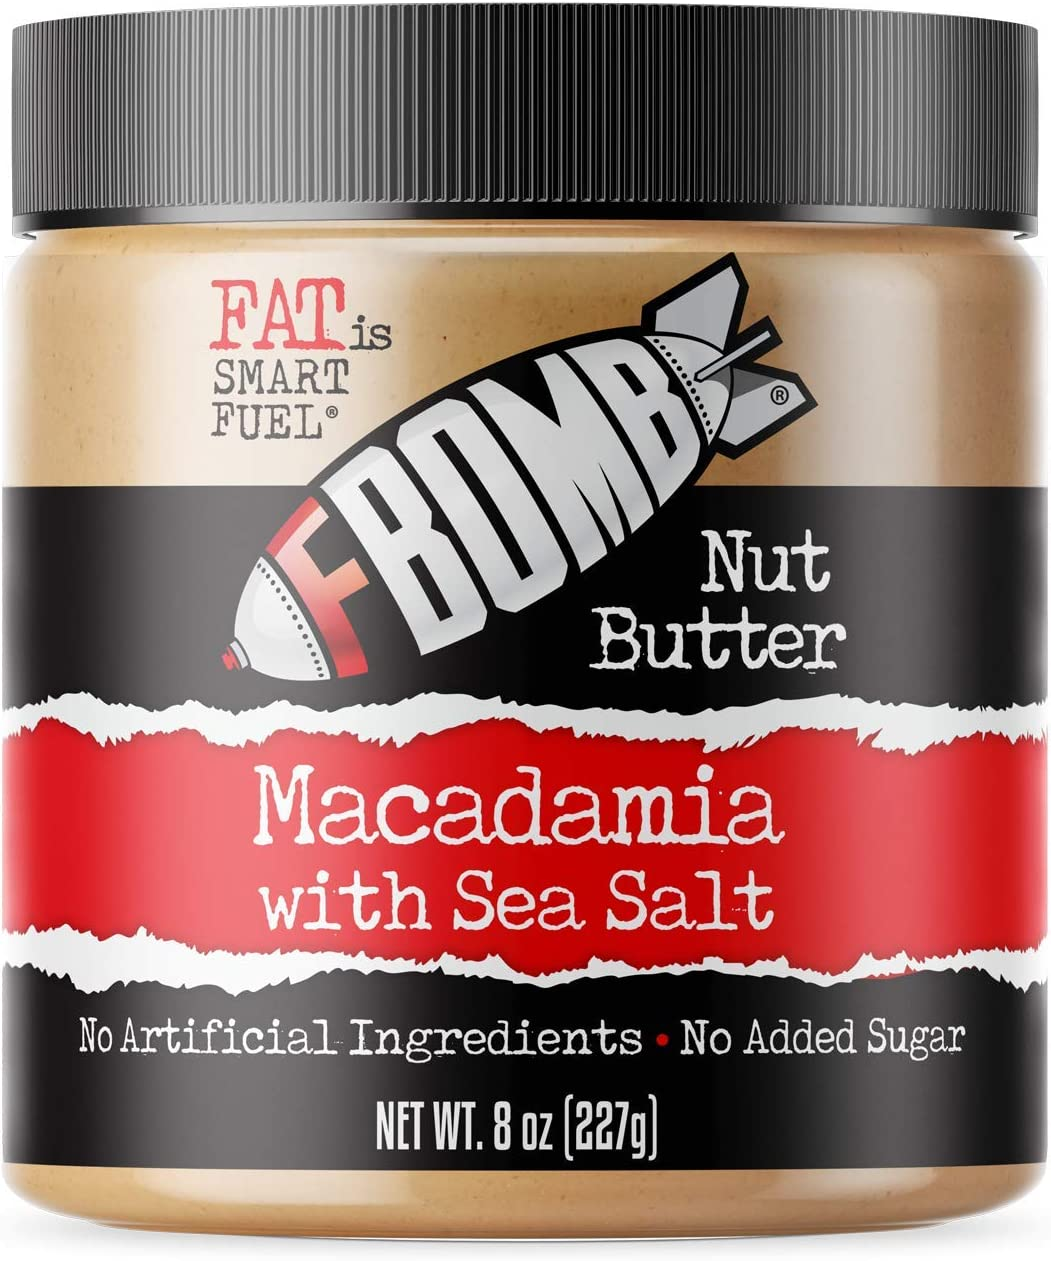 FBOMB Macadamia Nut Butter: Keto Fat Bombs, Natural Roasted Macadamia Nuts | High Fat, Low Carb Snack, High Quality Energy | Paleo, Whole30, Keto Snacks | Macadamia & Sea Salt - 8 Oz Jar